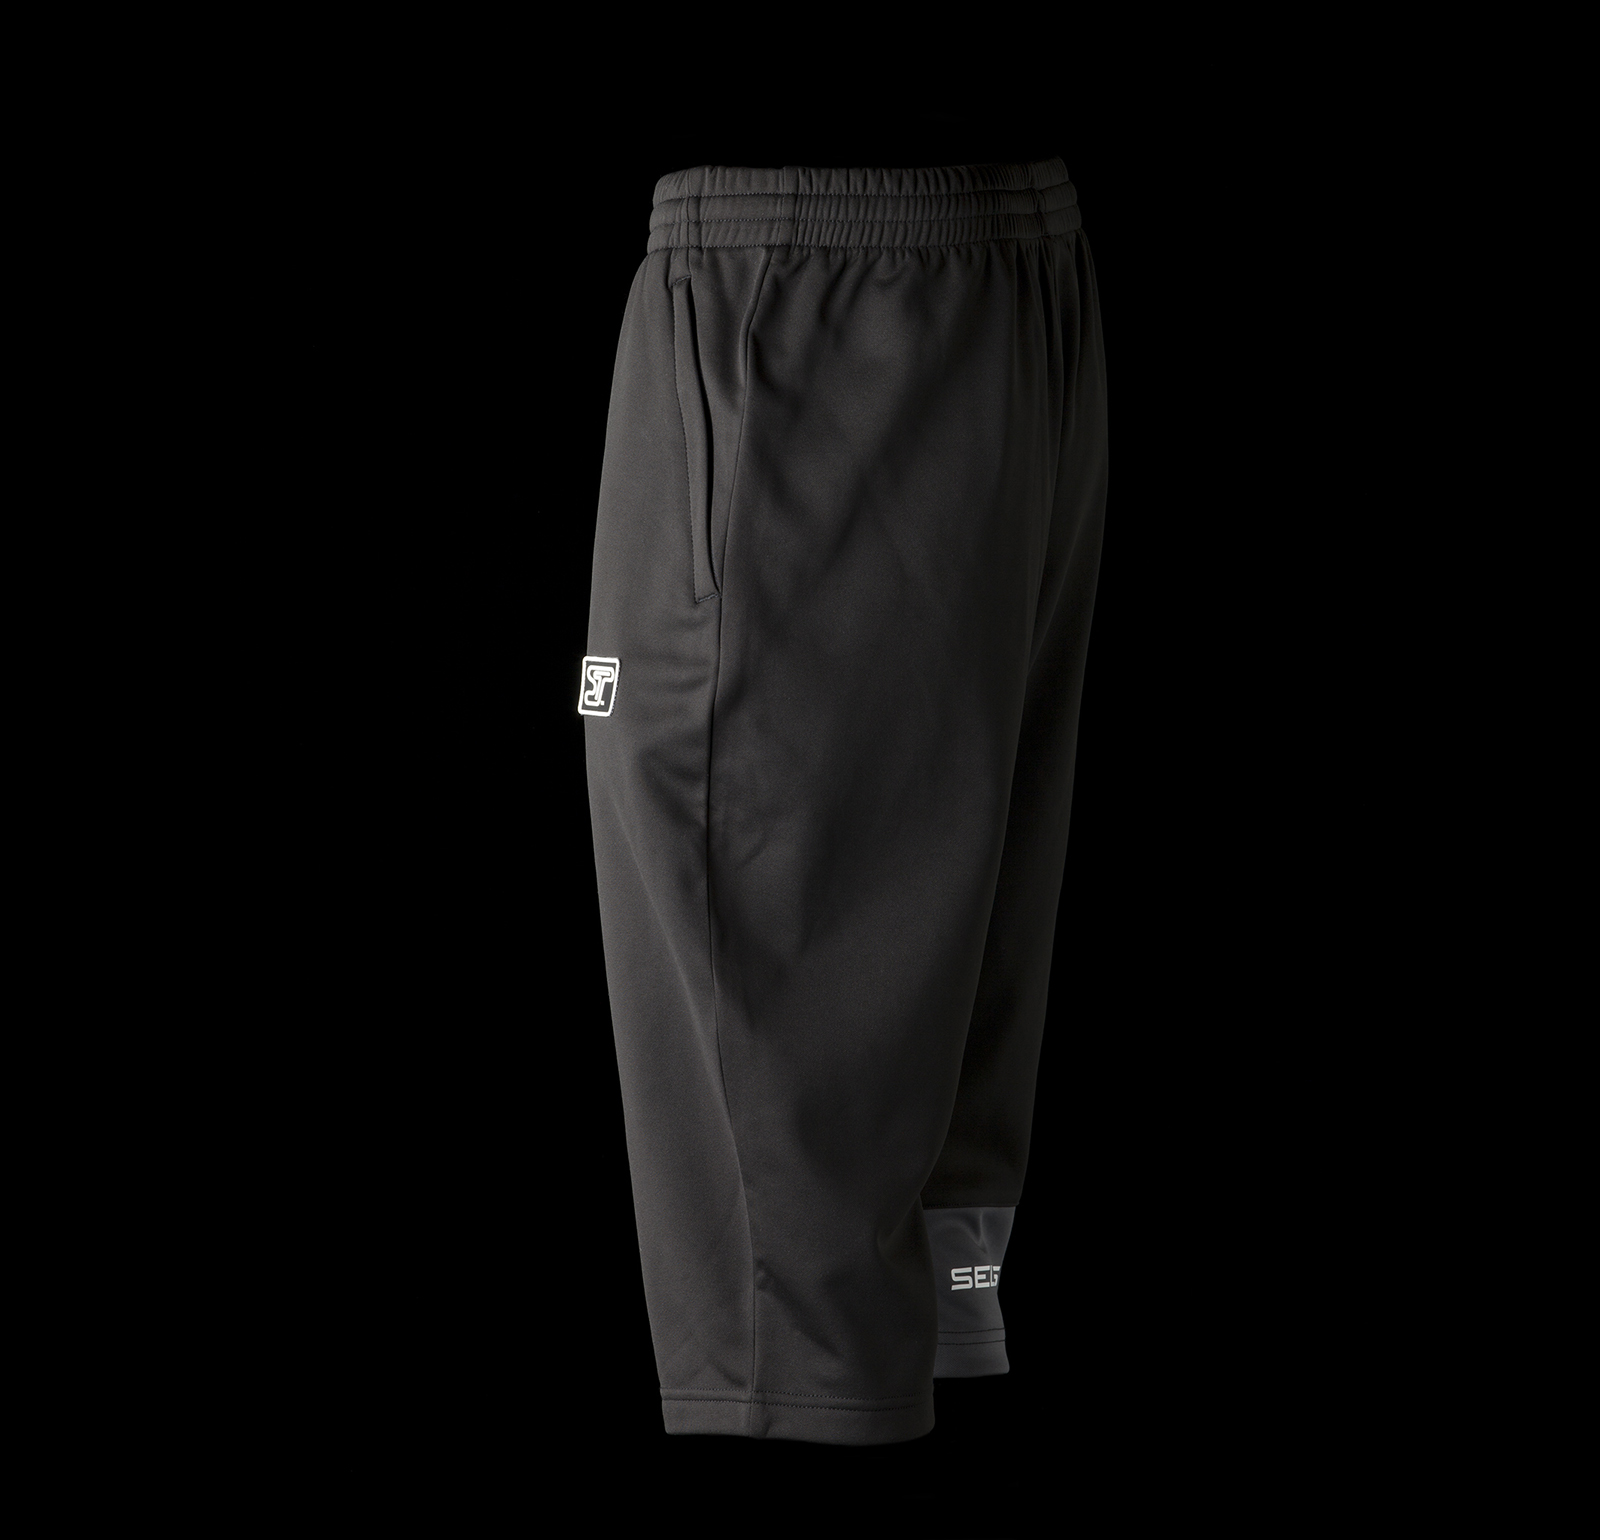 excel-3-4-pant-promo-22